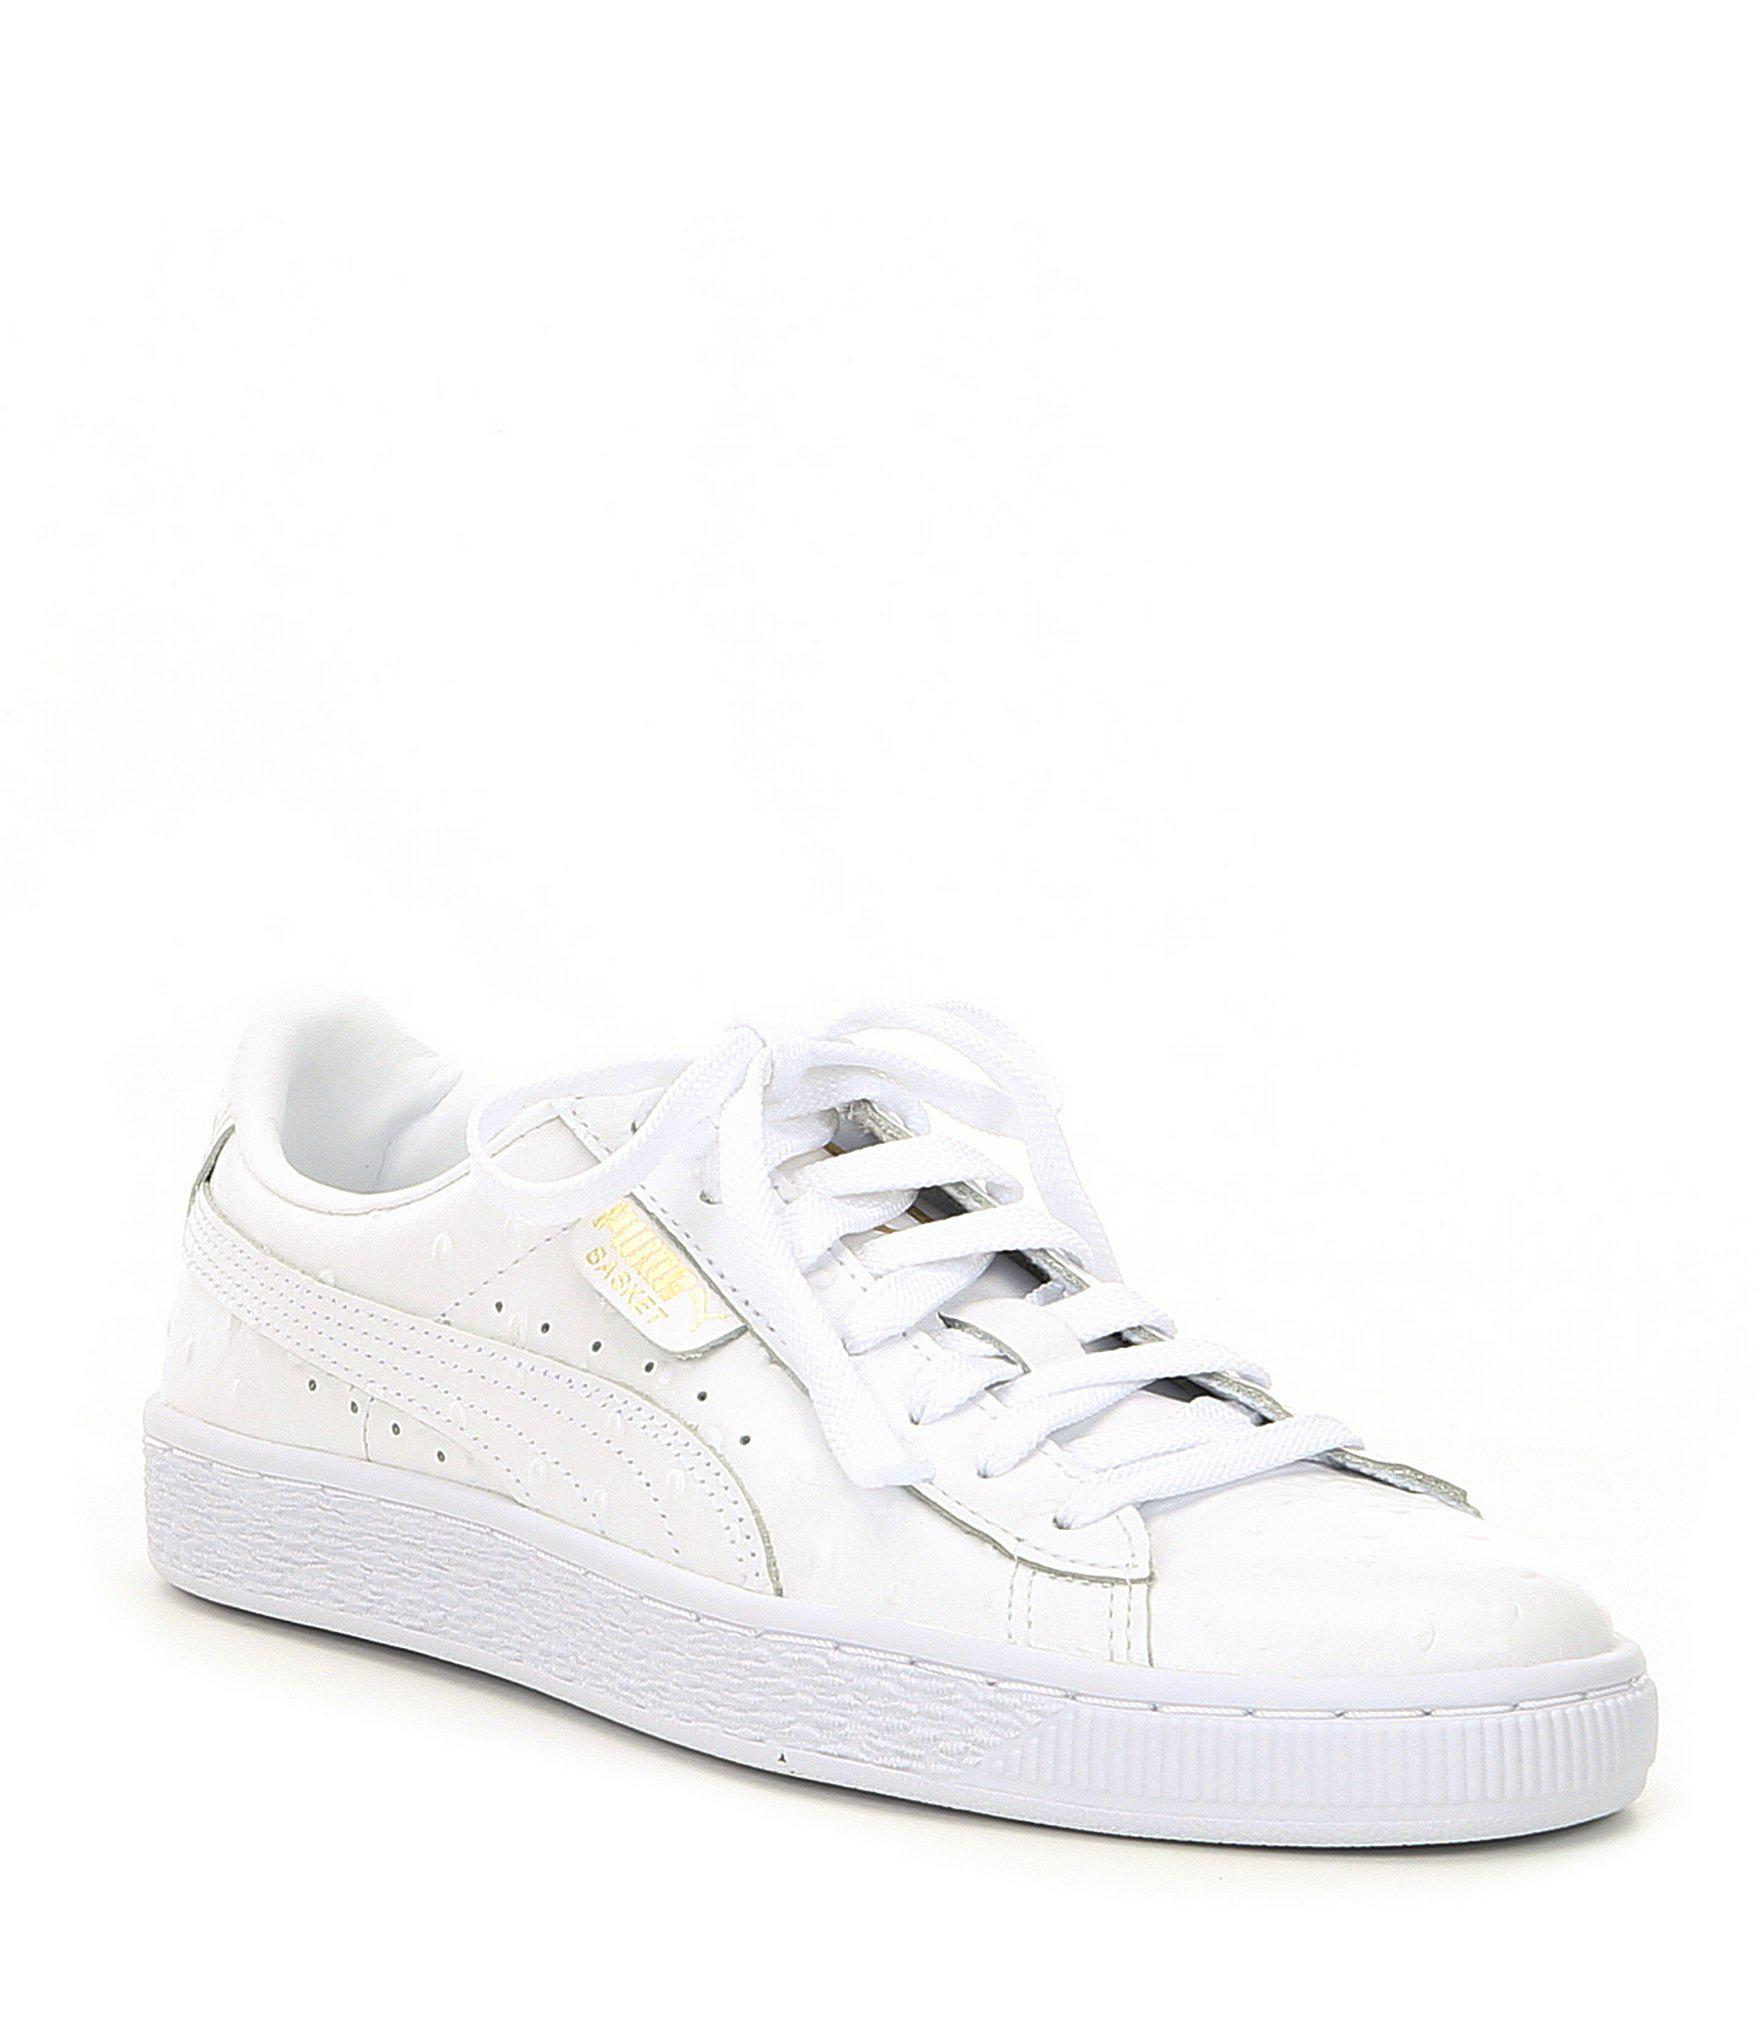 4a8c7633ce0 Lyst - PUMA Women s Basket Ostrich Sneakers in White